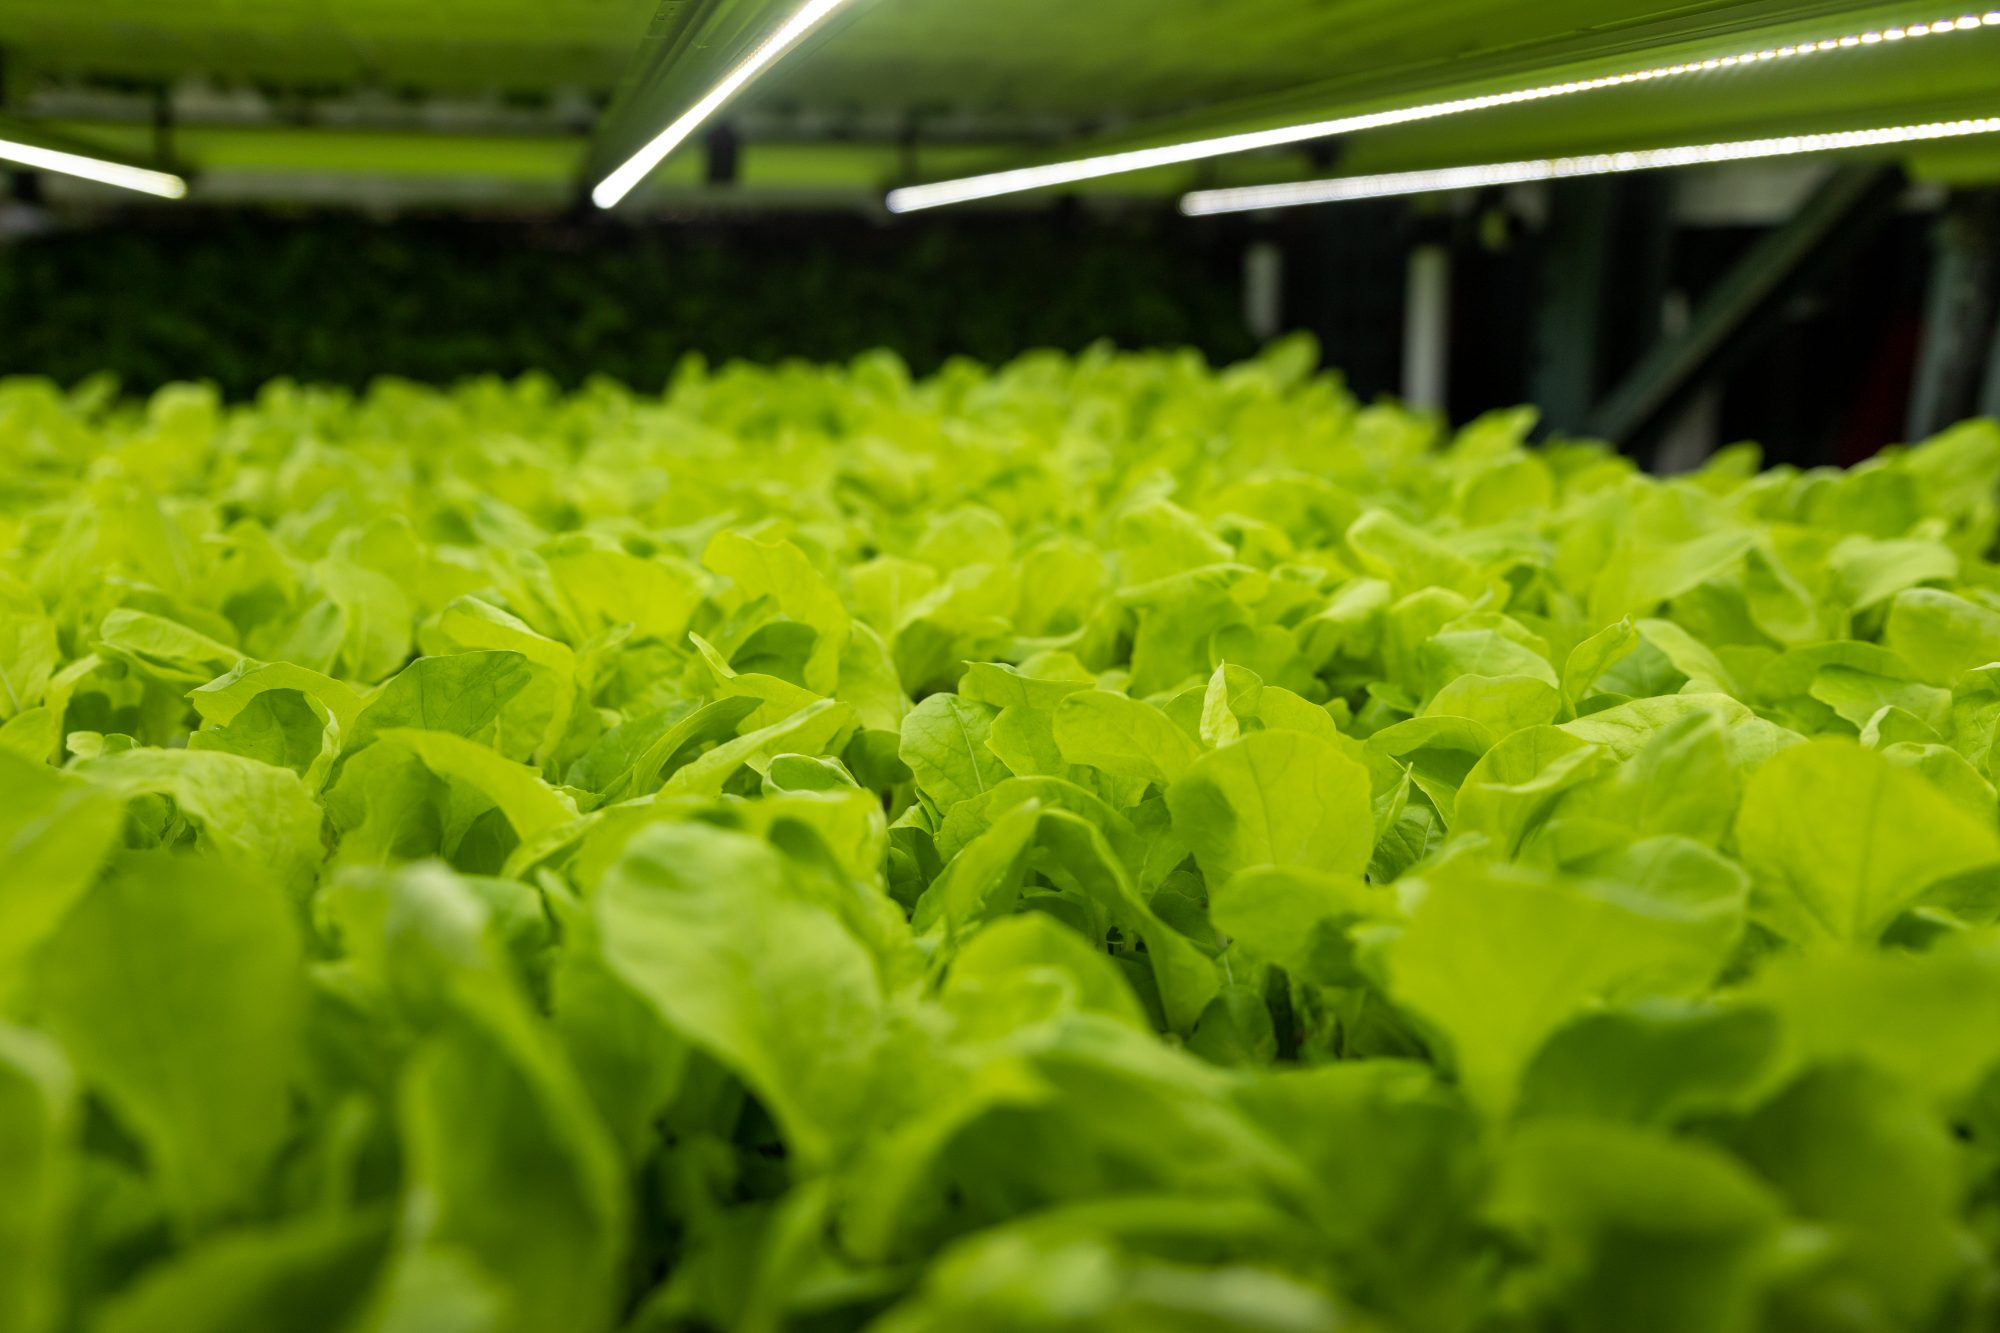 salad greens growing in a vertical farm